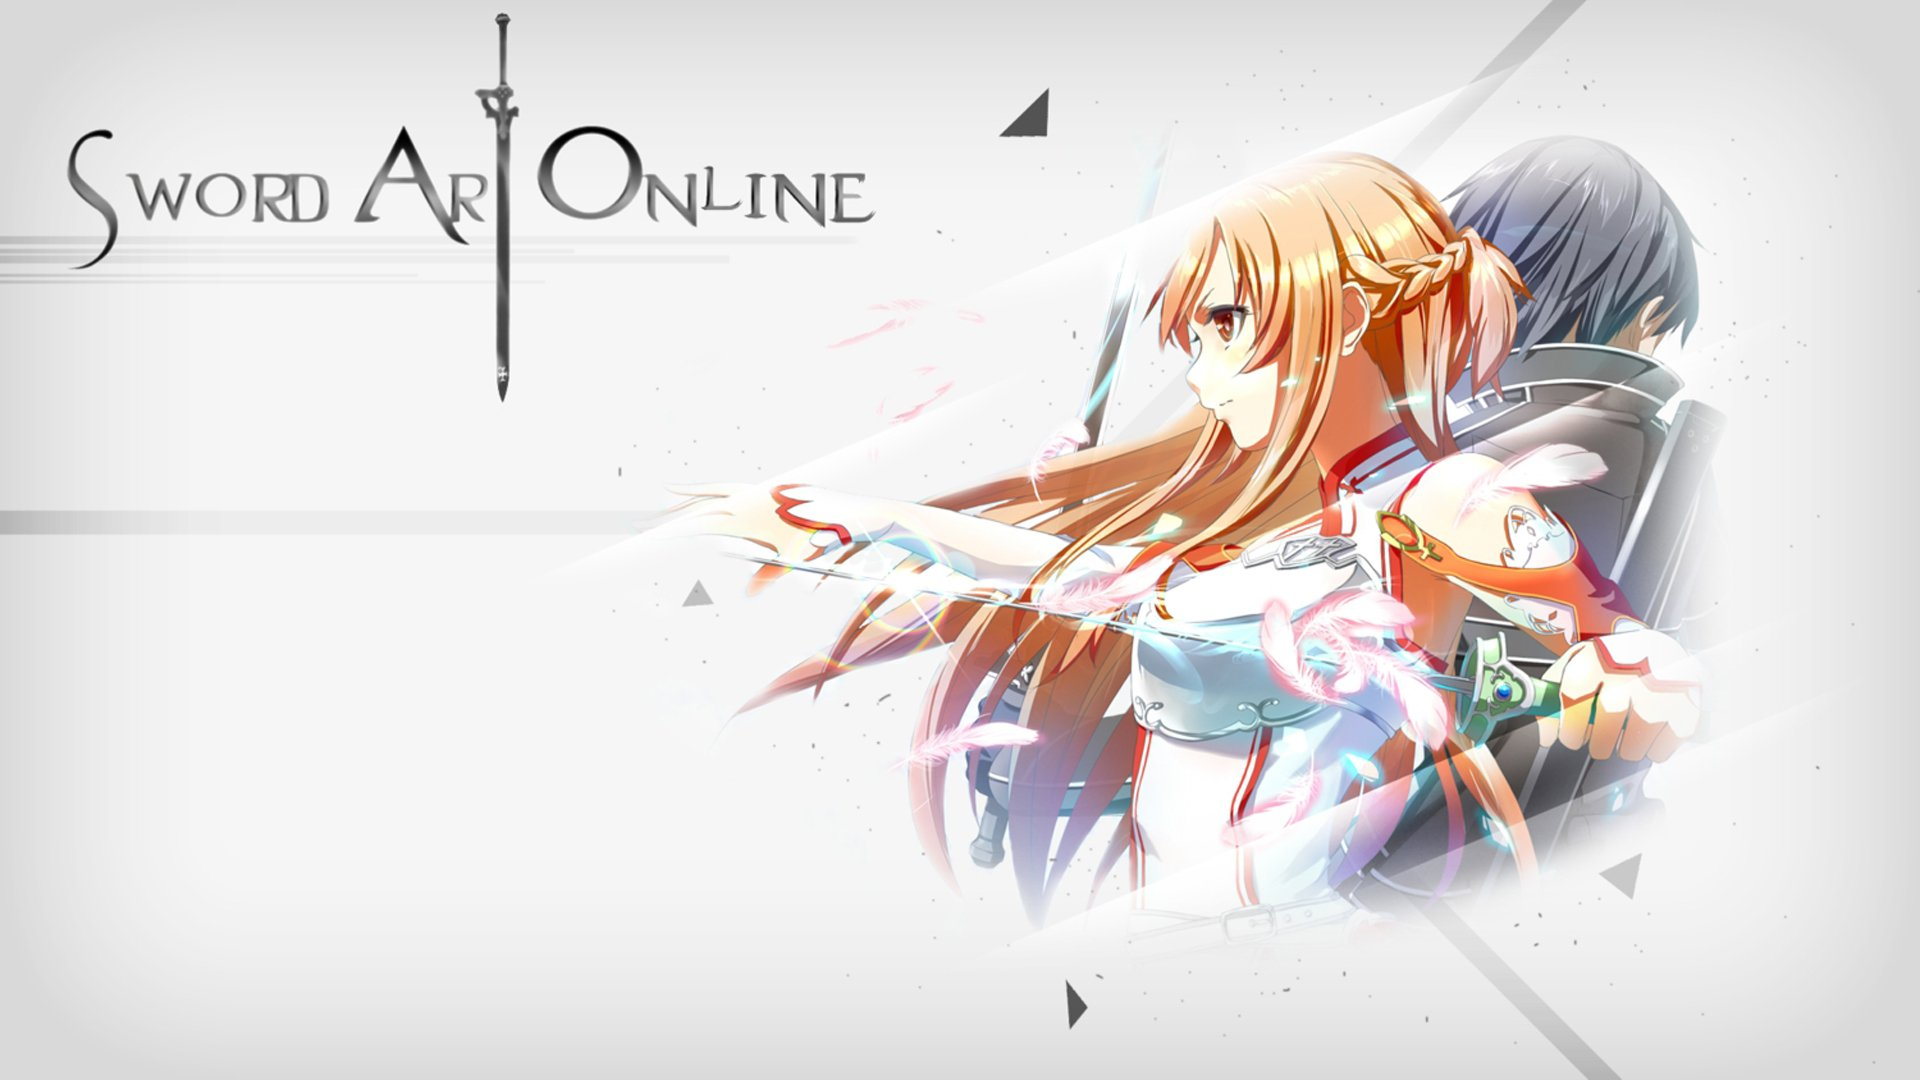 Sword Art Online Wallpaper 1920x1080